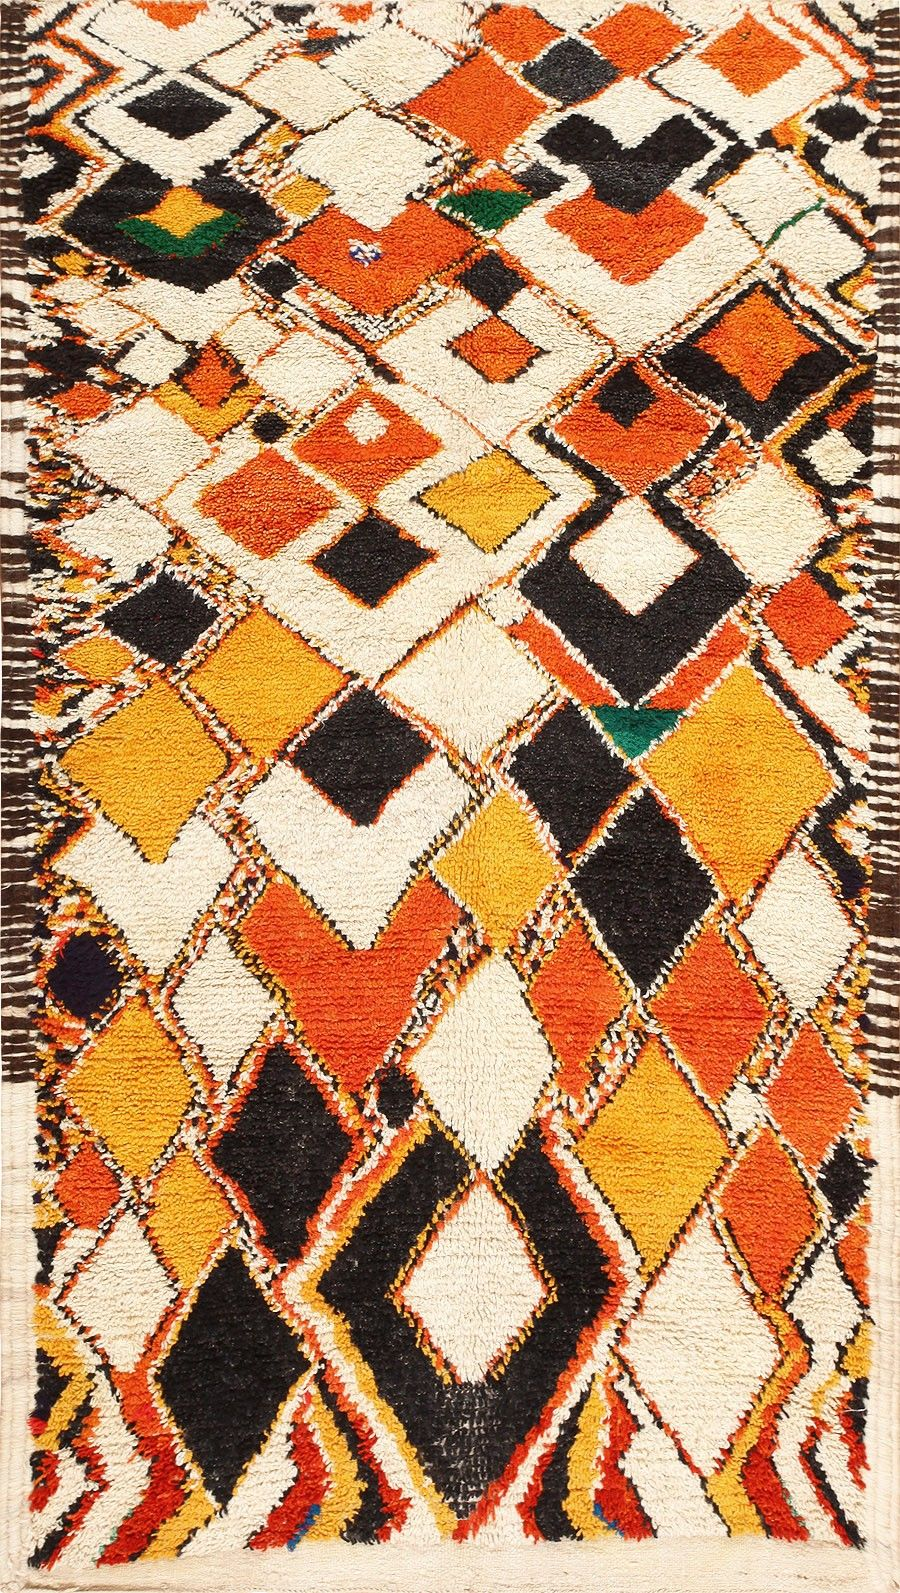 Colorful And Primitive Vintage Moroccan Rug 47936 Nest